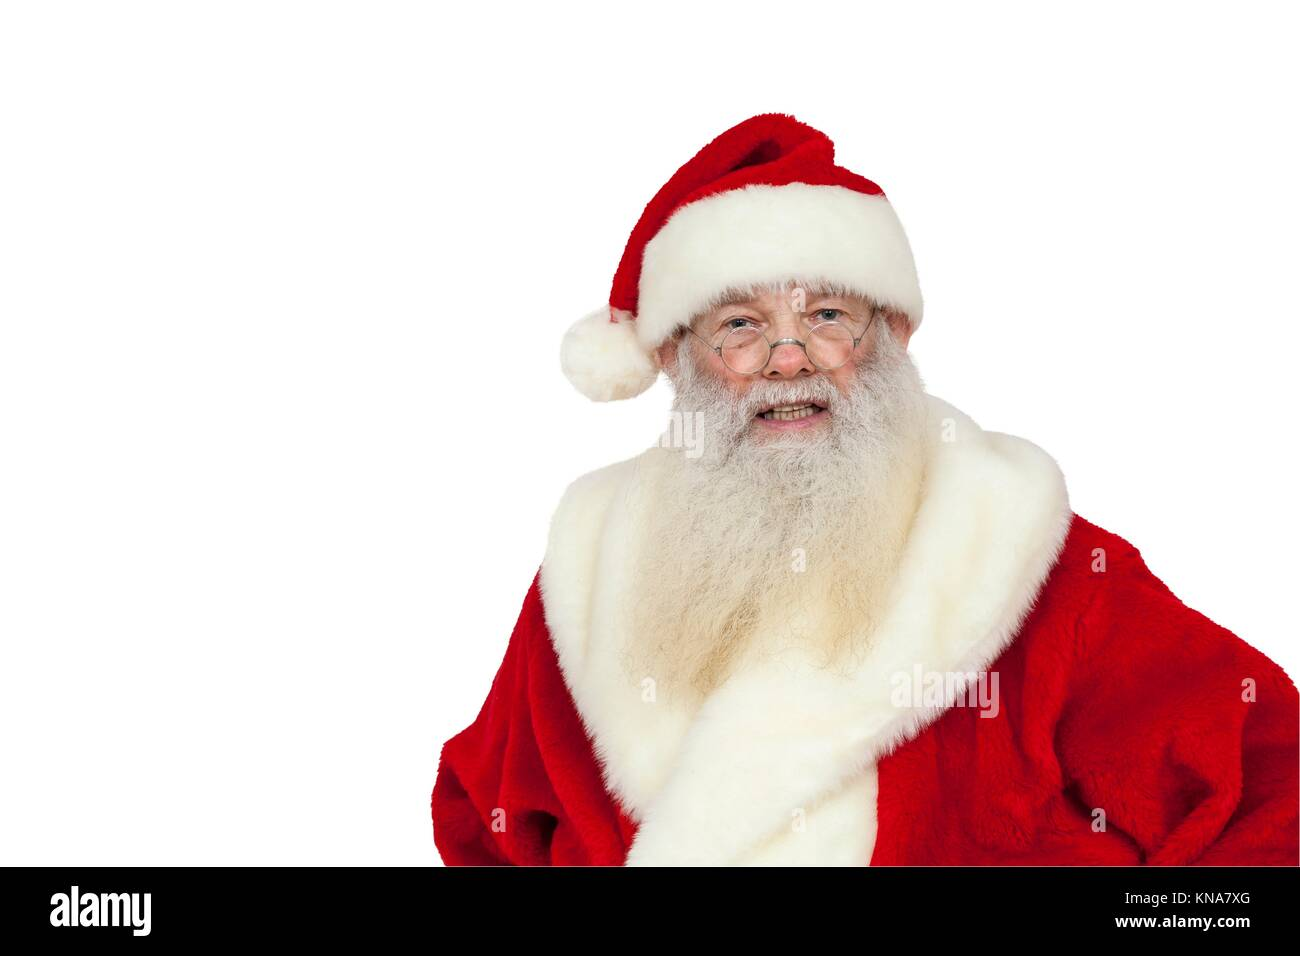 Santa Claus with real white beard looks angry (isolated). - Stock Image